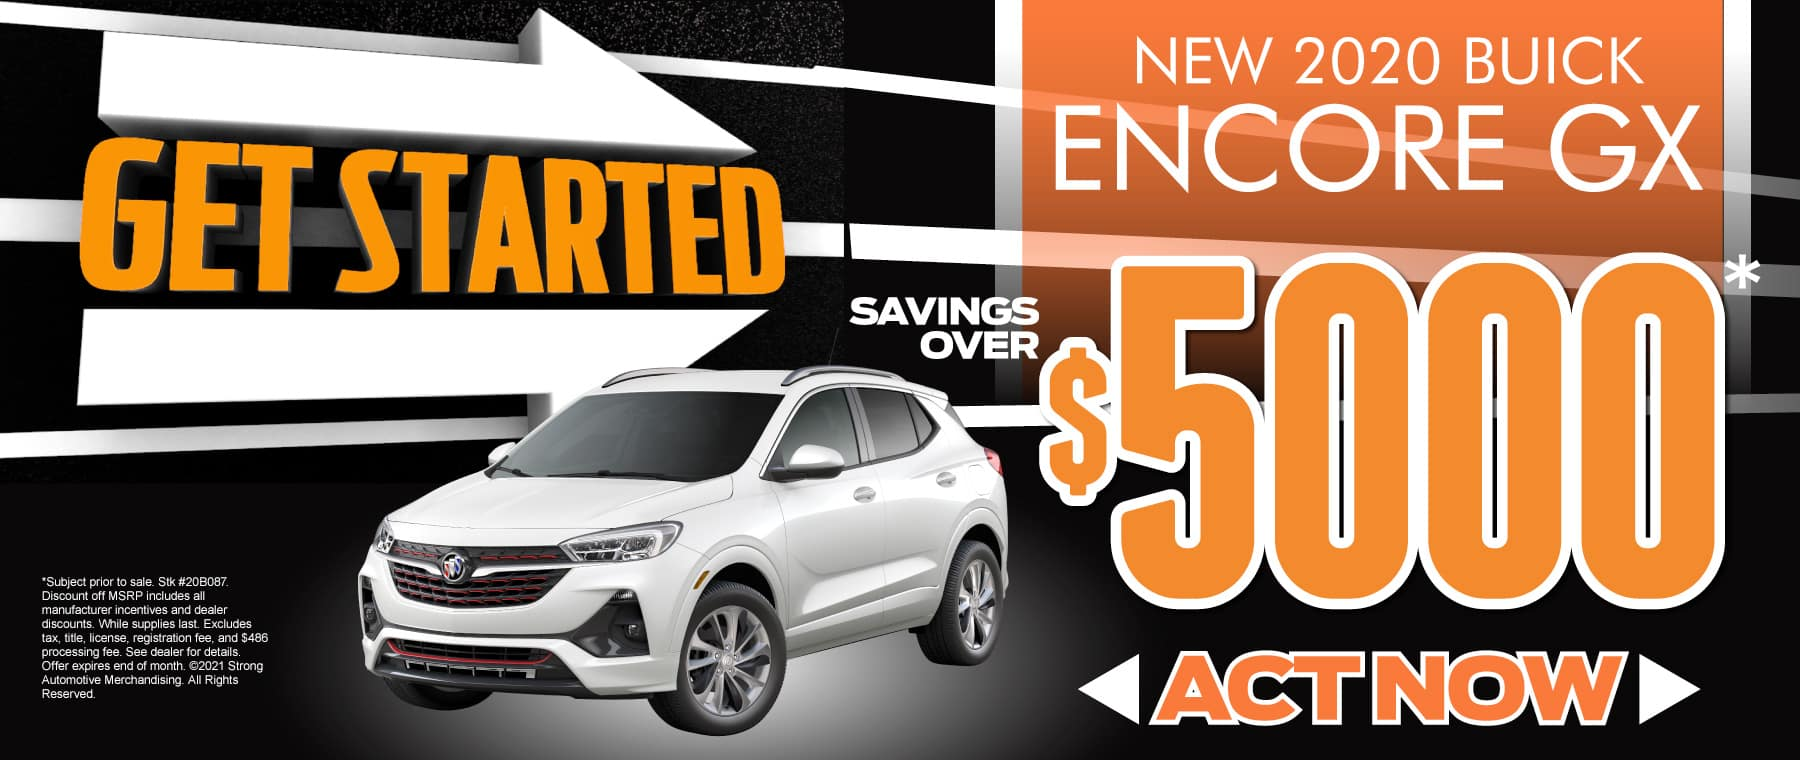 New 2020 Buick Encore - $5000 off - act now